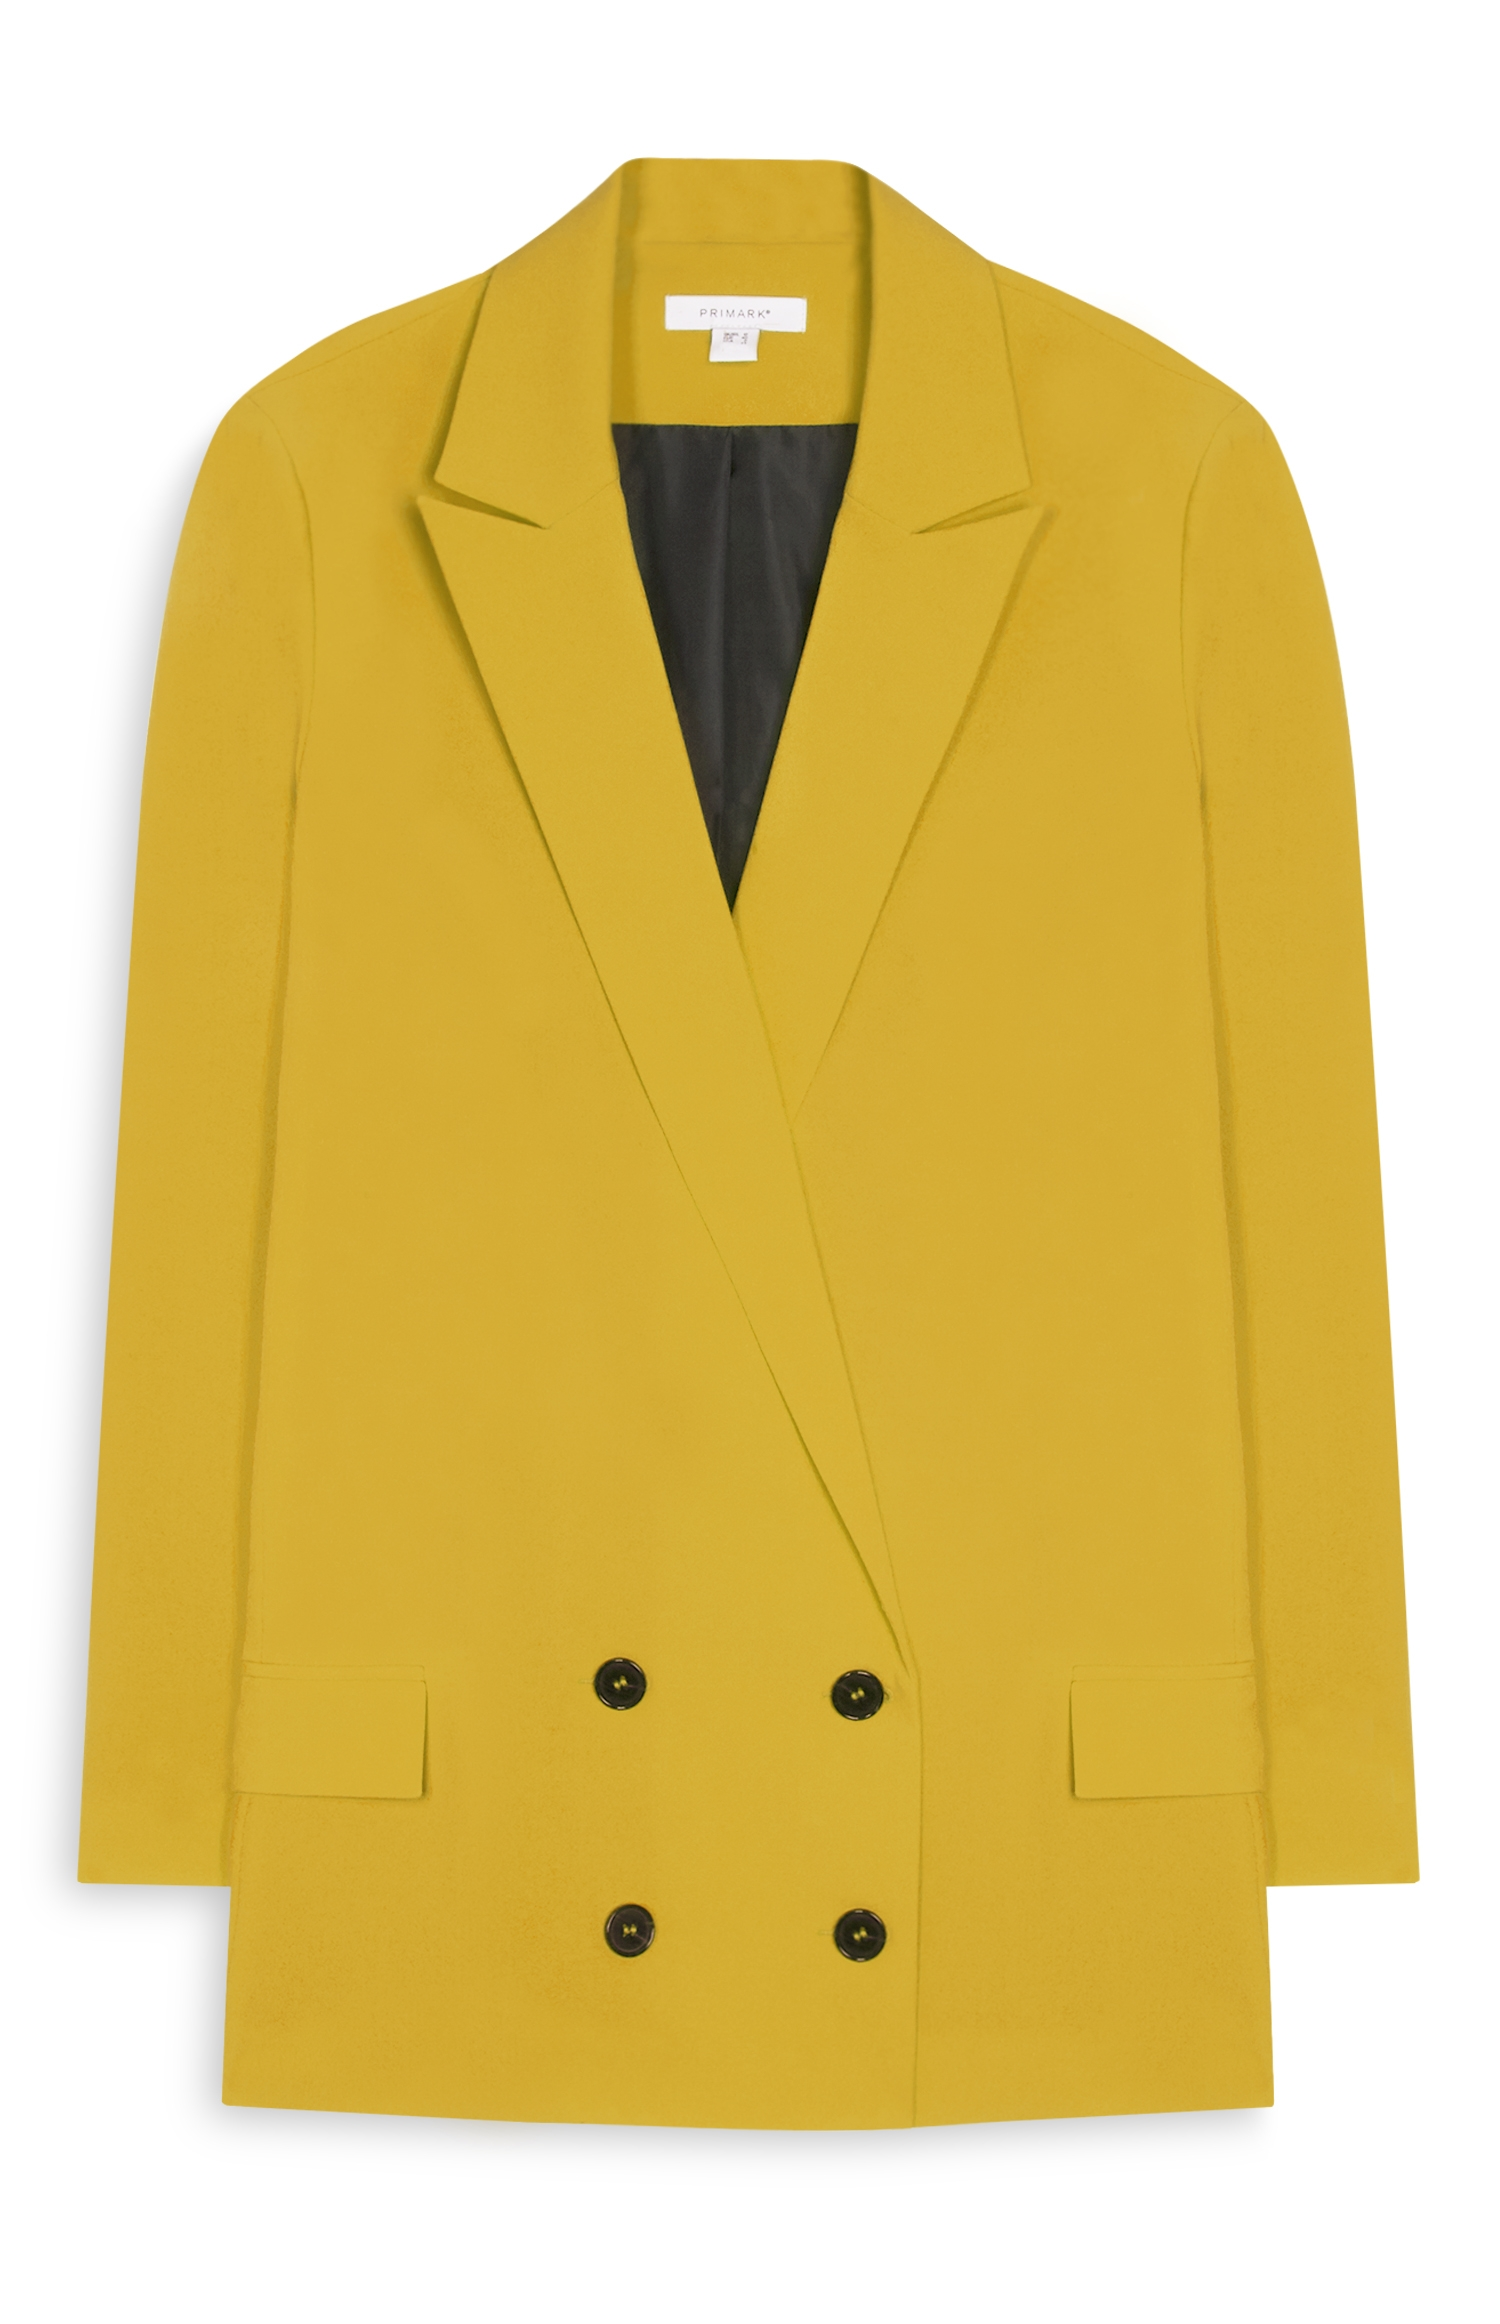 Yellow mustard jackets